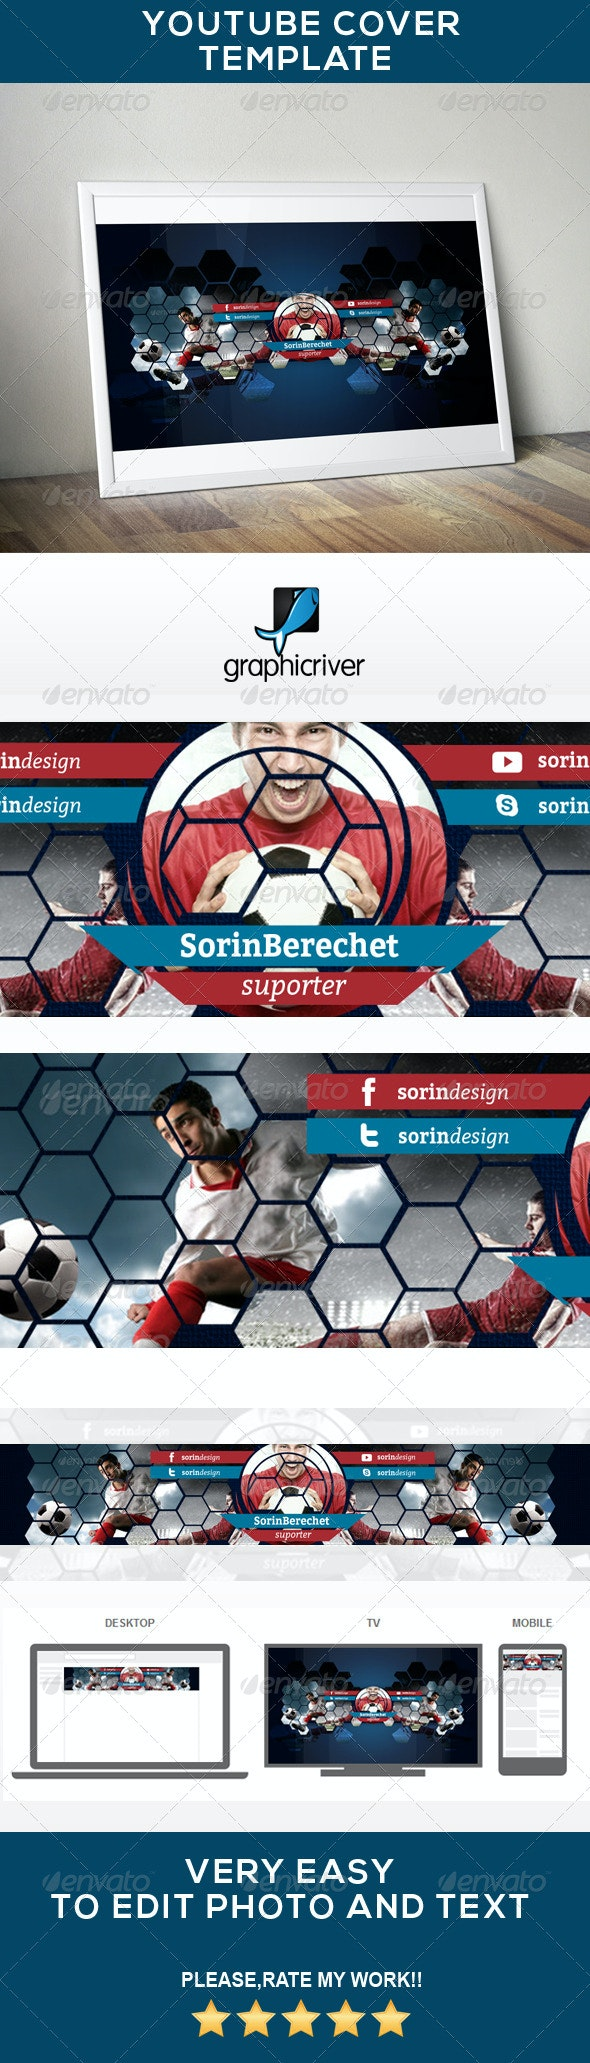 Youtube Soccer Banner - YouTube Social Media